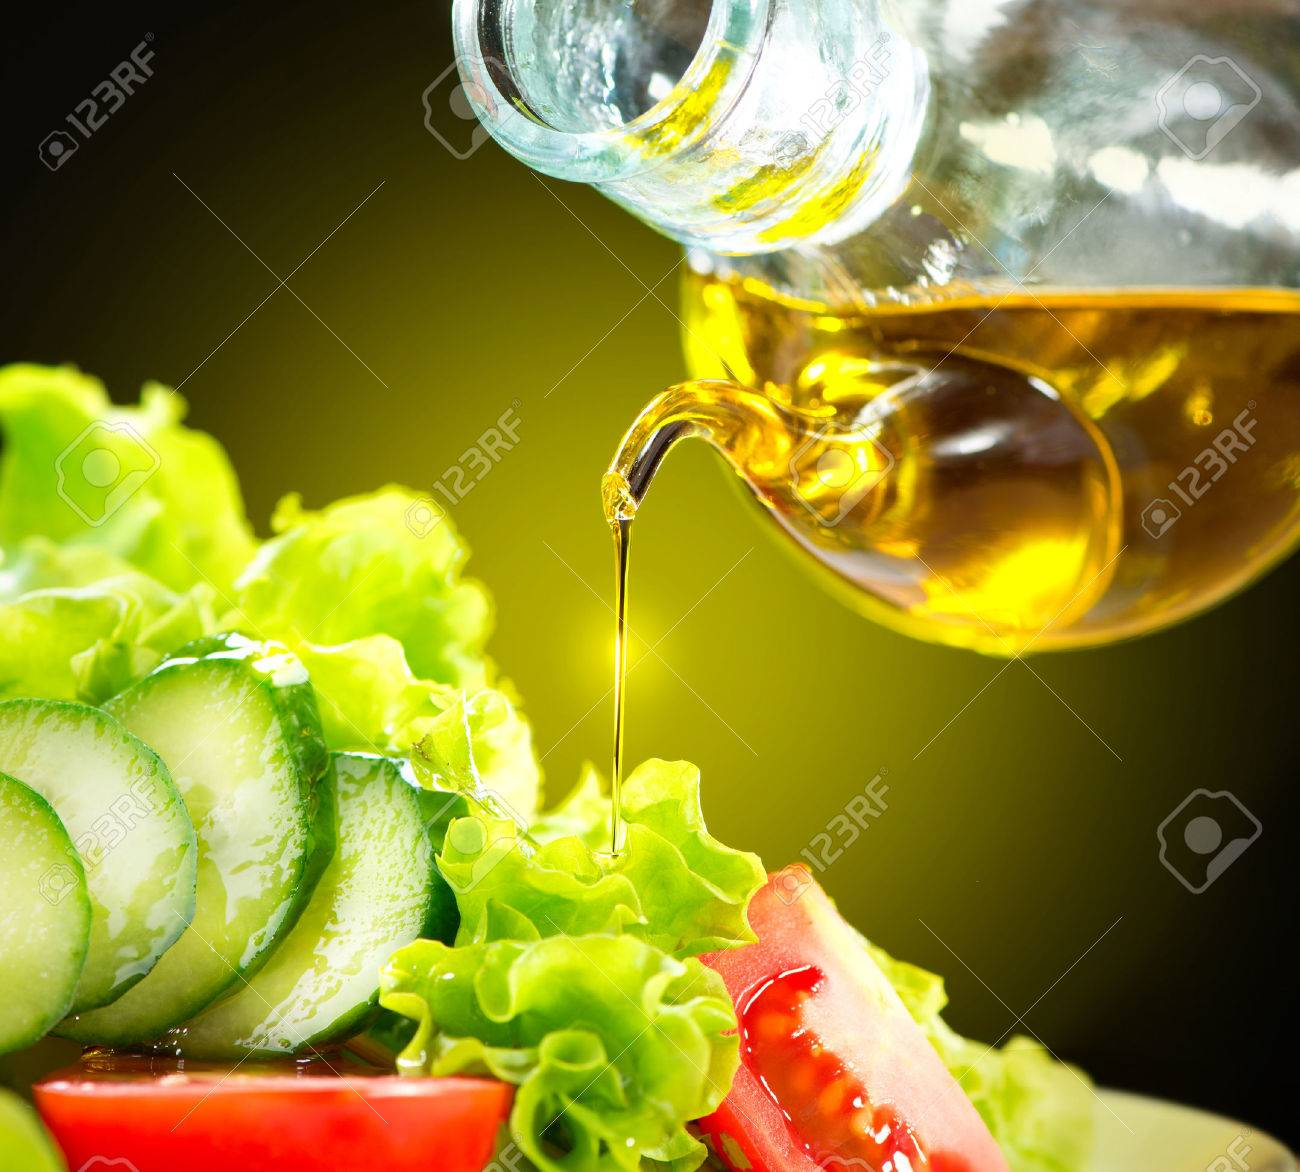 Healthy Vegetable Salad with Olive Oil Dressing - 28851211